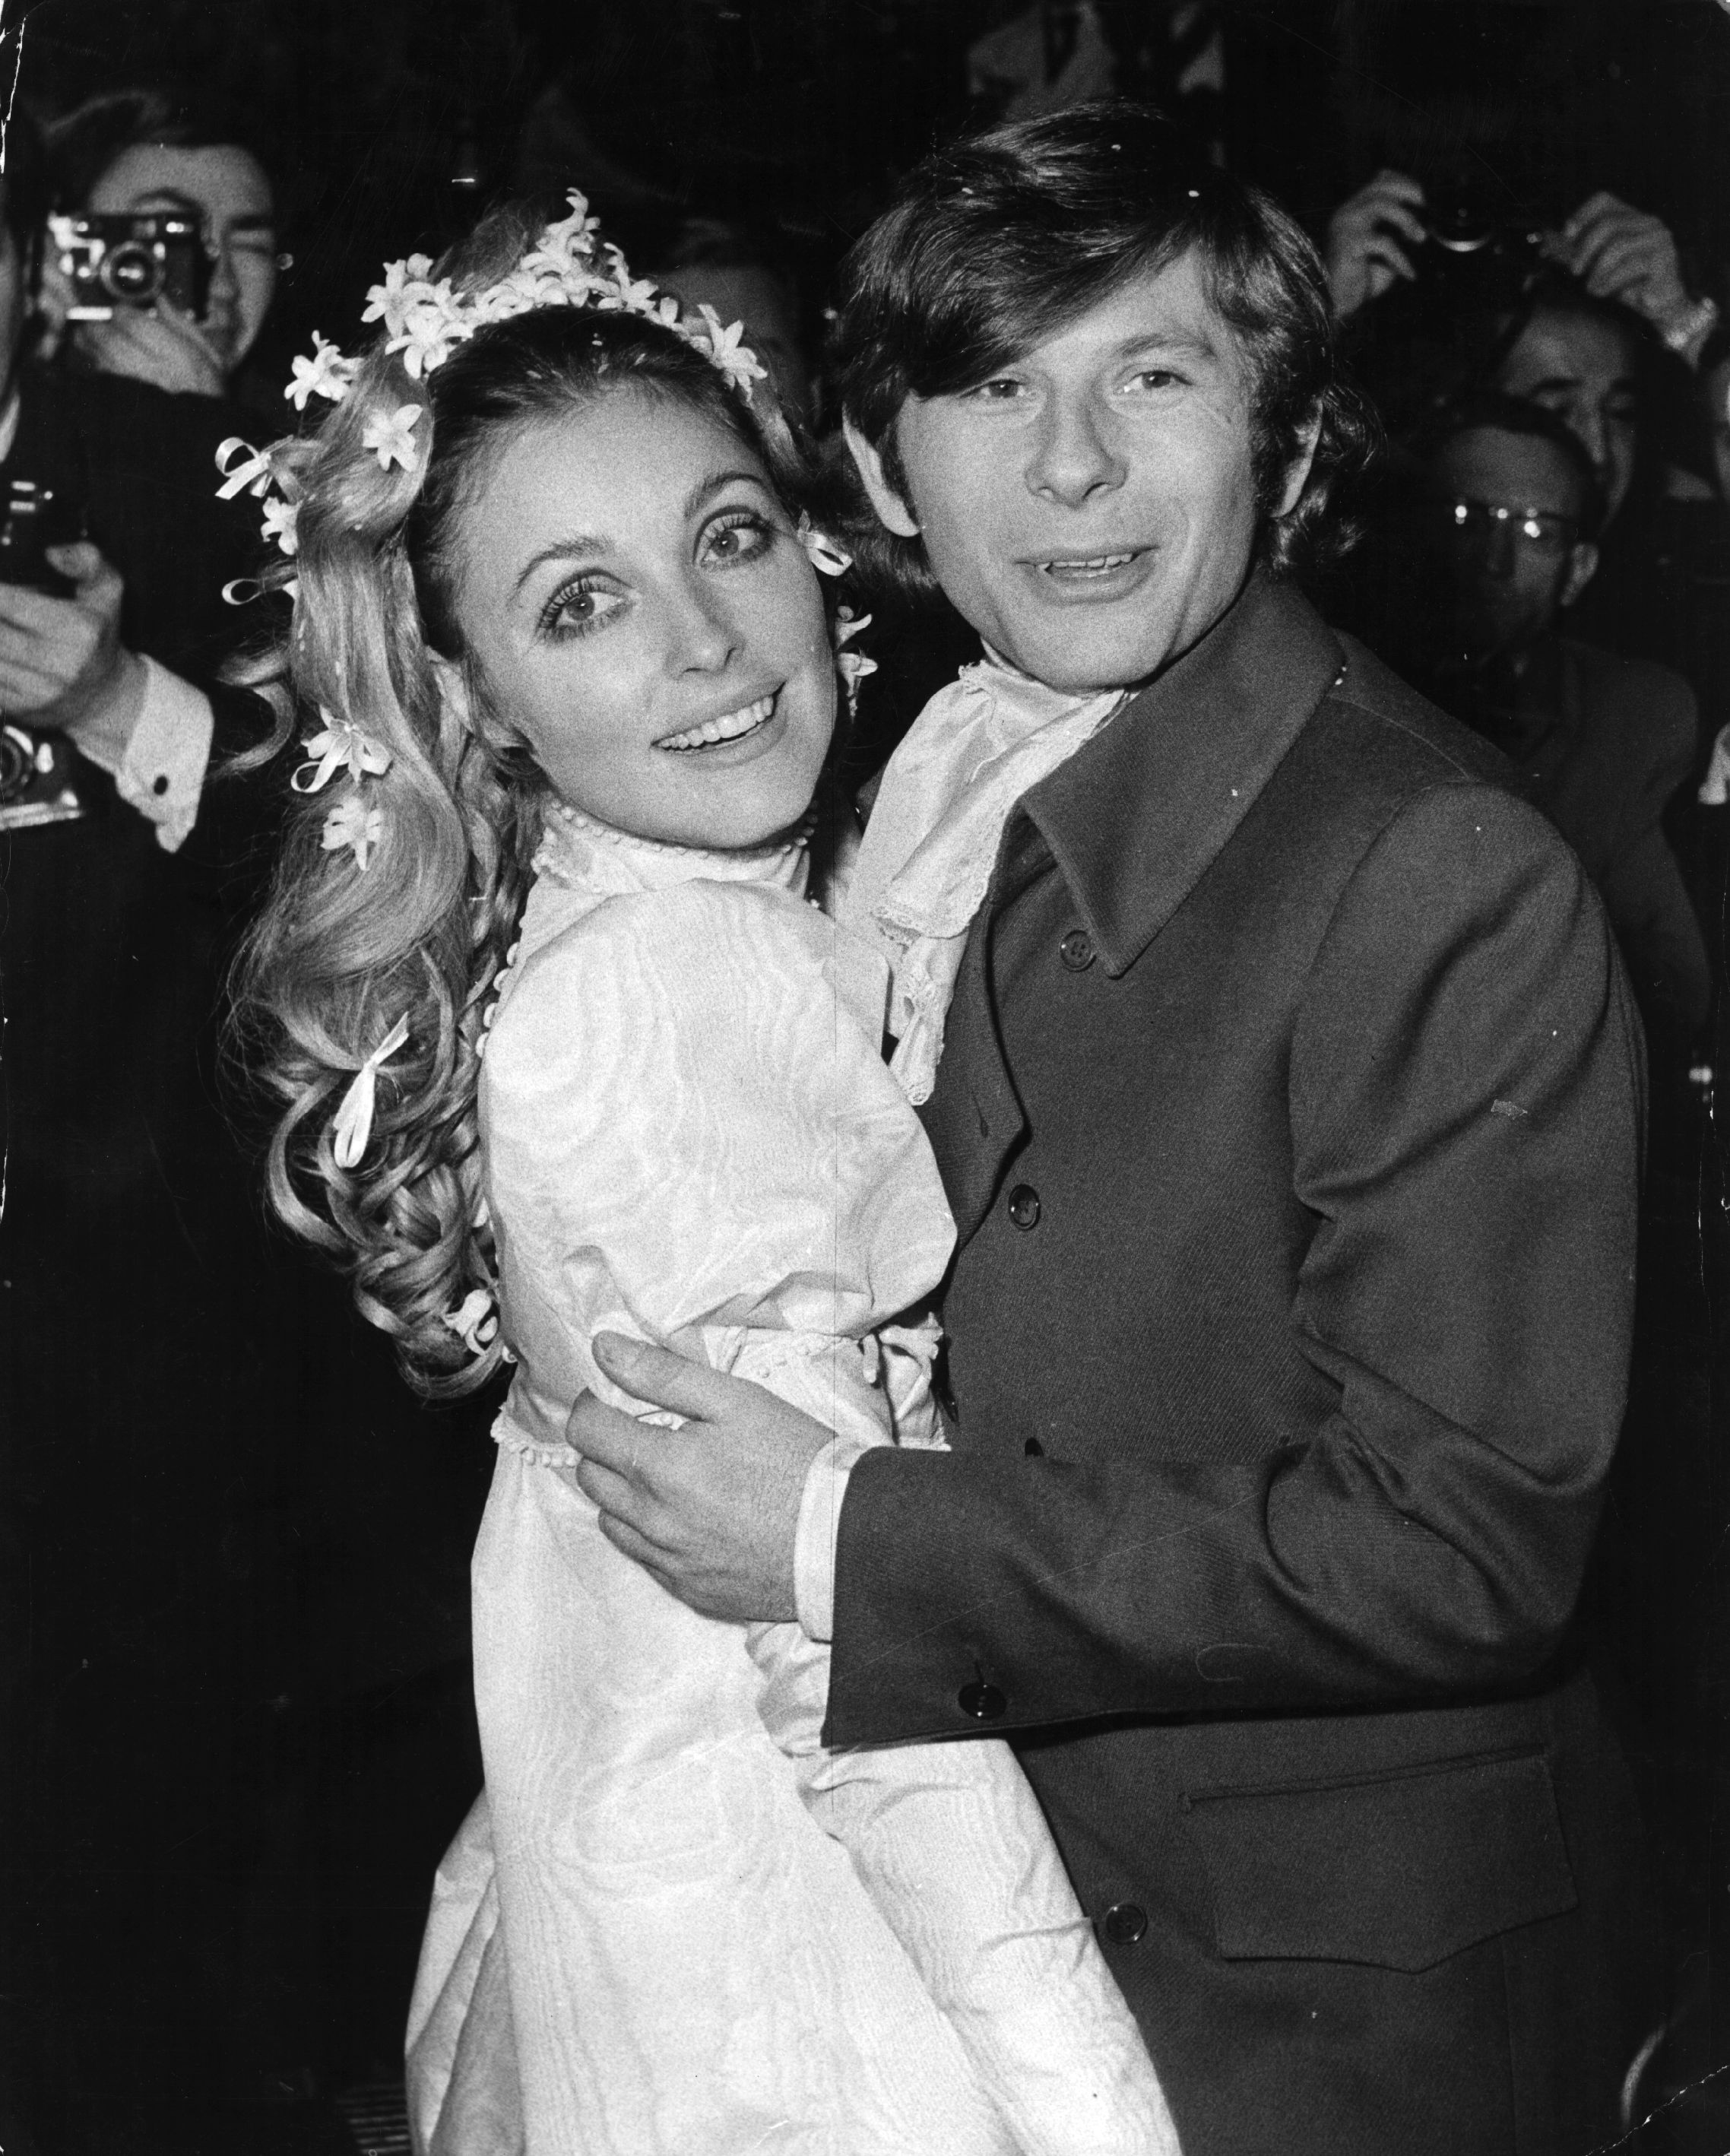 American film actress Sharon Tate (1943 - 1969) at her London wedding with Polish actor and director Roman Polanski. Sharon was murdered by followers of Charles Manson, when heavily pregnant with Roman's baby.  Original Publication: People Disc - HP0302   (Photo by Keystone/Getty Images)